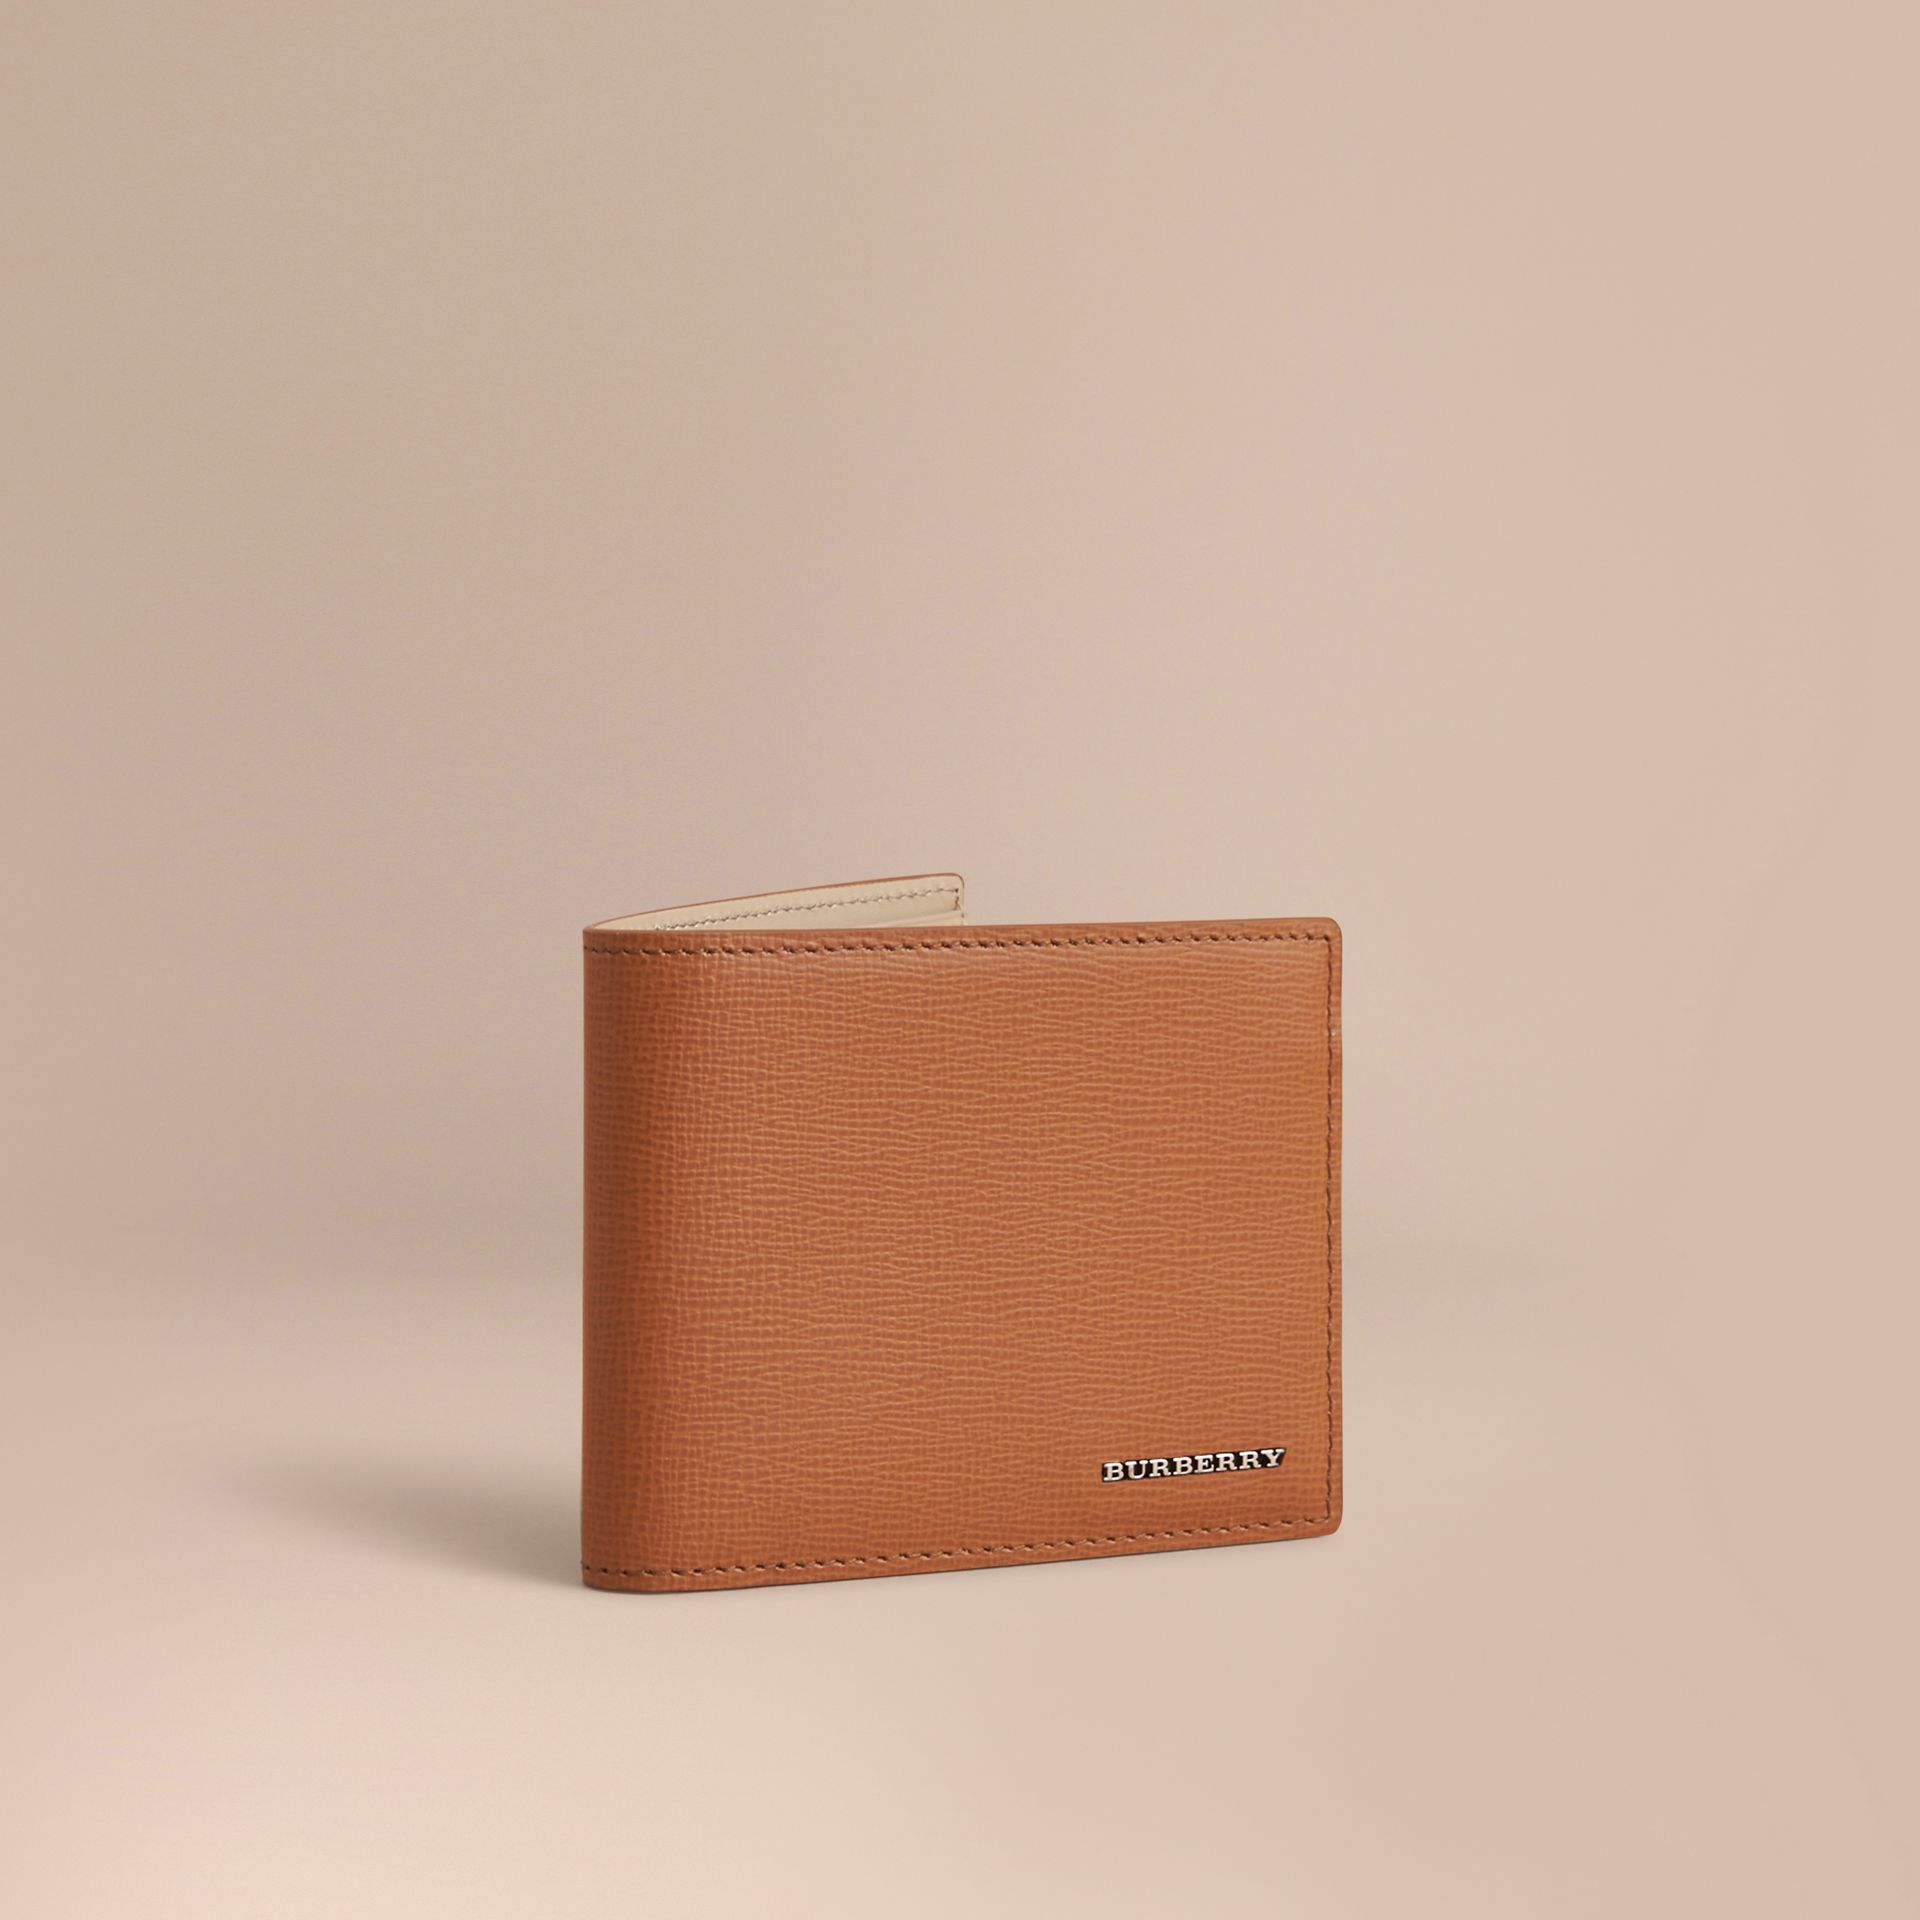 London Leather Bifold Wallet in Tan | Burberry United States - gallery image 1